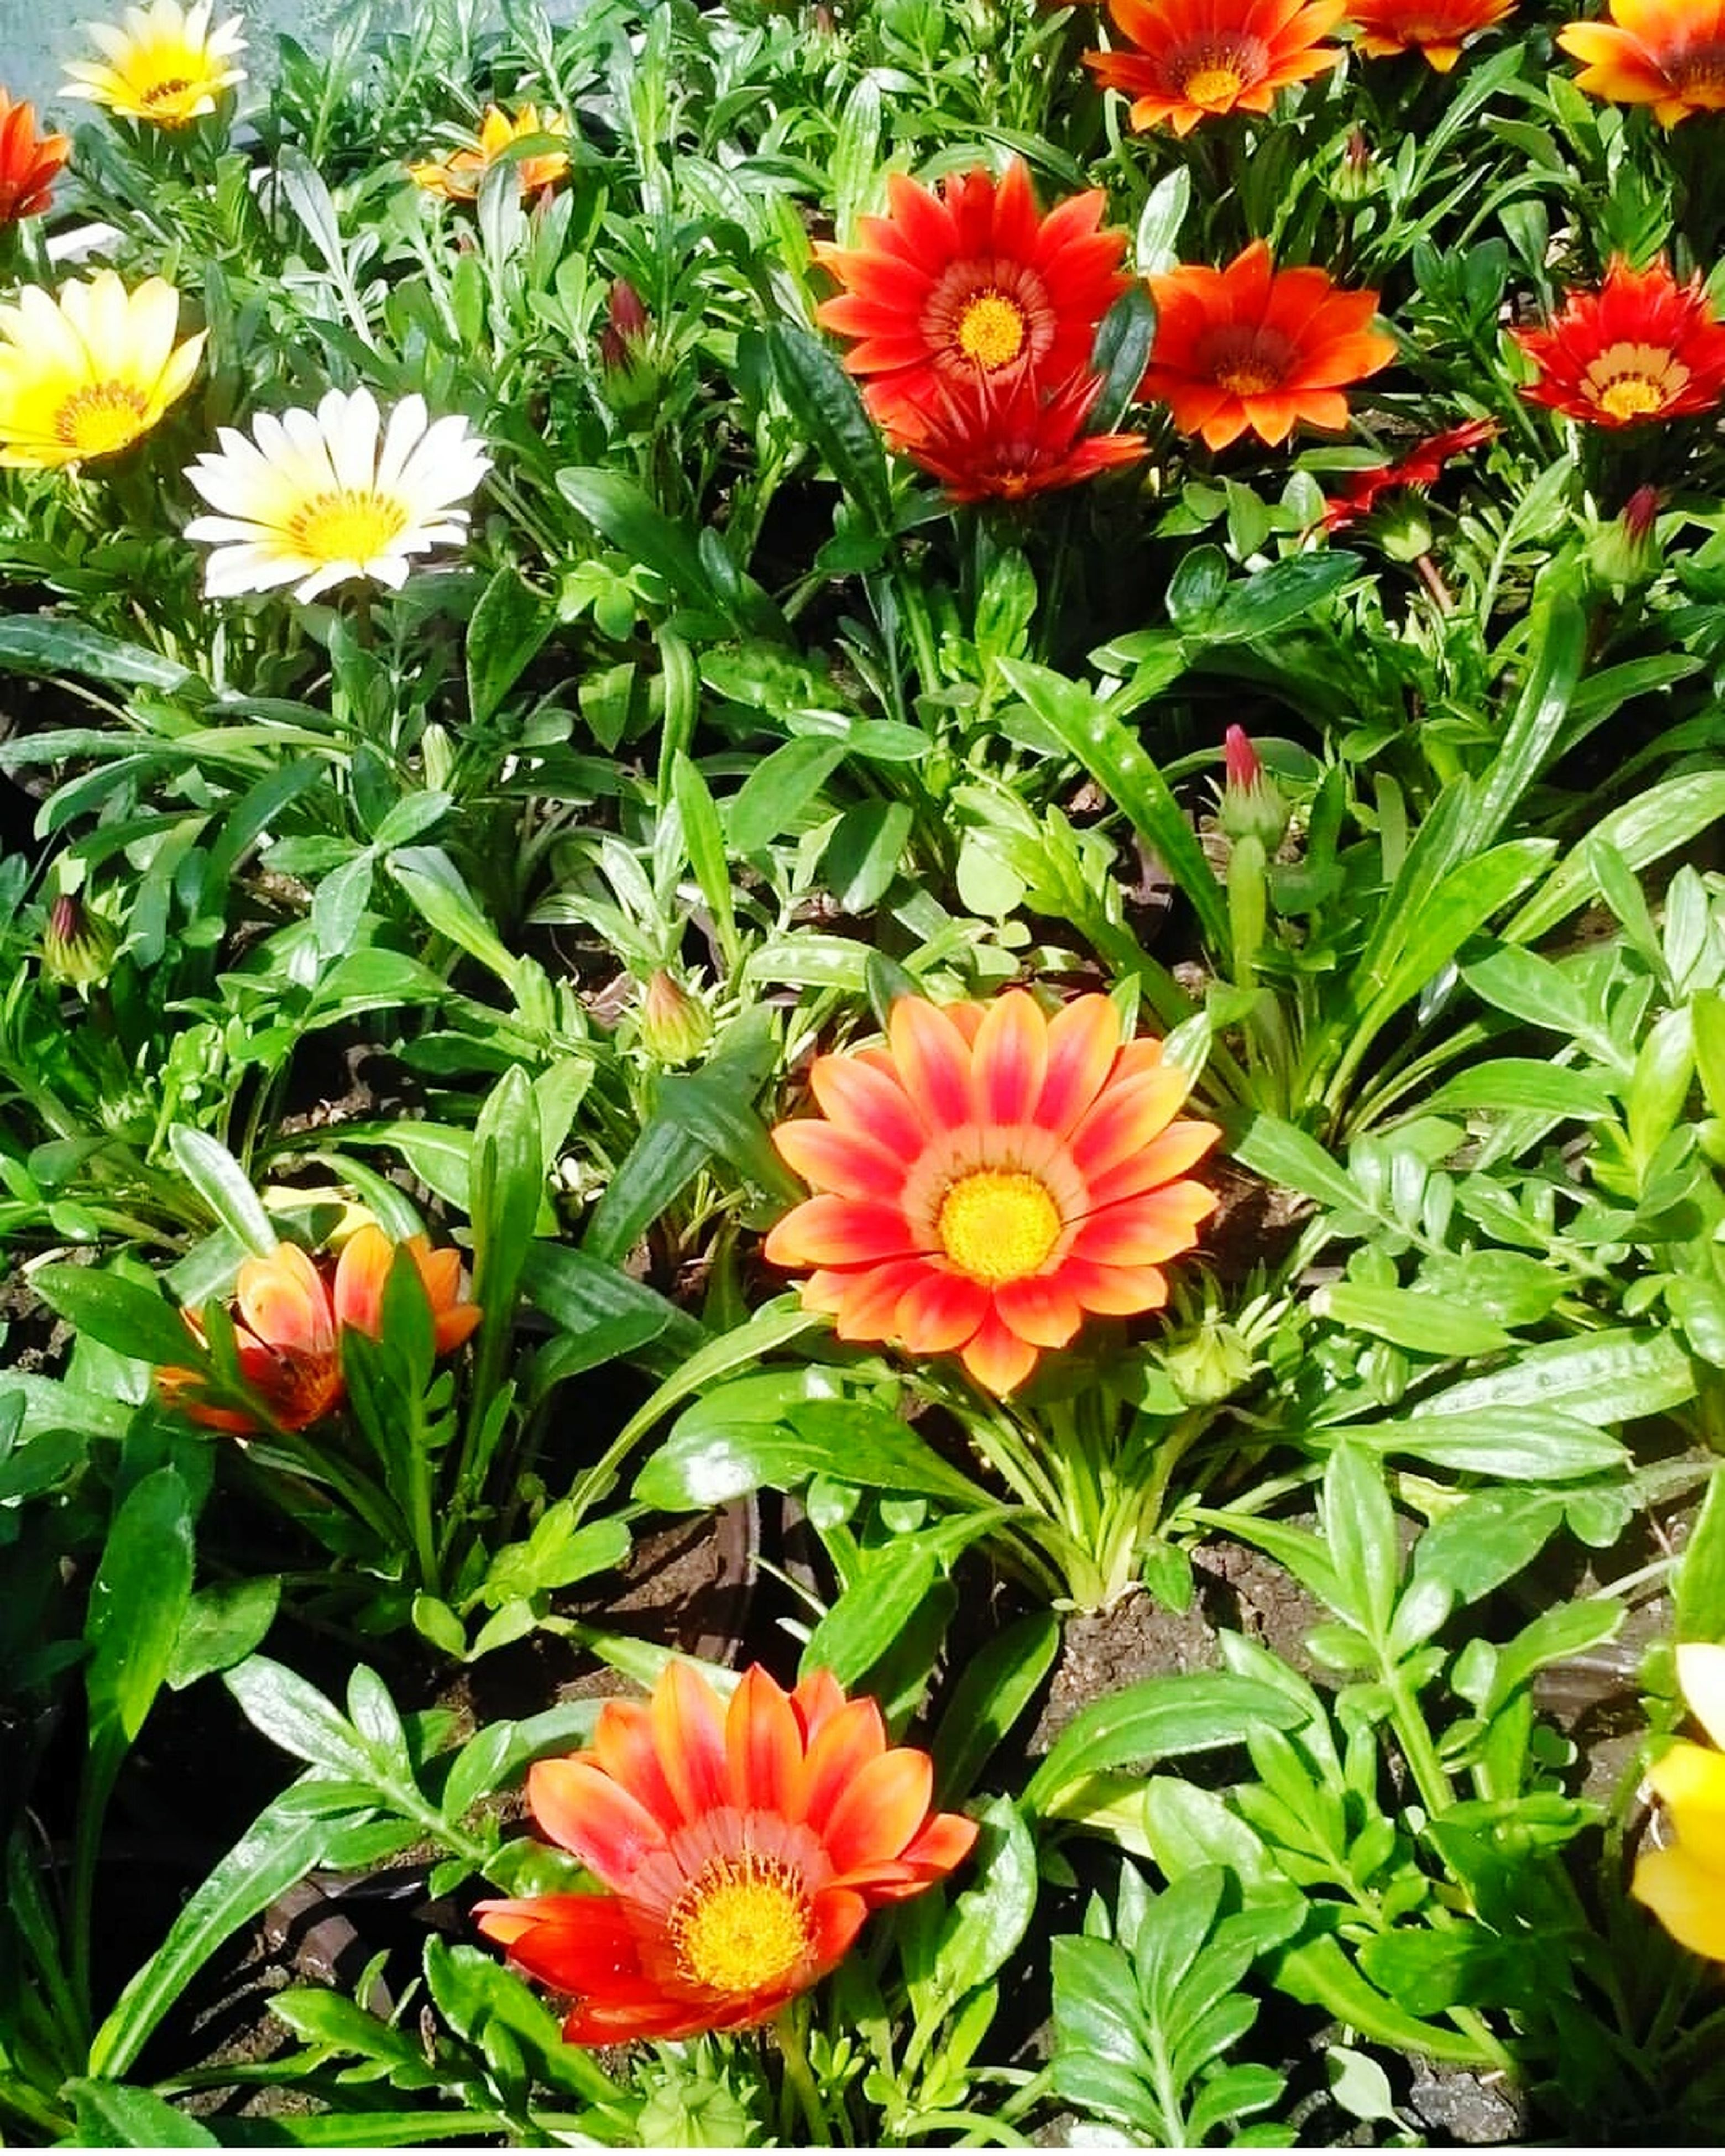 flower, growth, fragility, nature, plant, beauty in nature, flower head, petal, freshness, blooming, outdoors, green color, leaf, day, no people, gazania, high angle view, springtime, red, zinnia, flowerbed, close-up